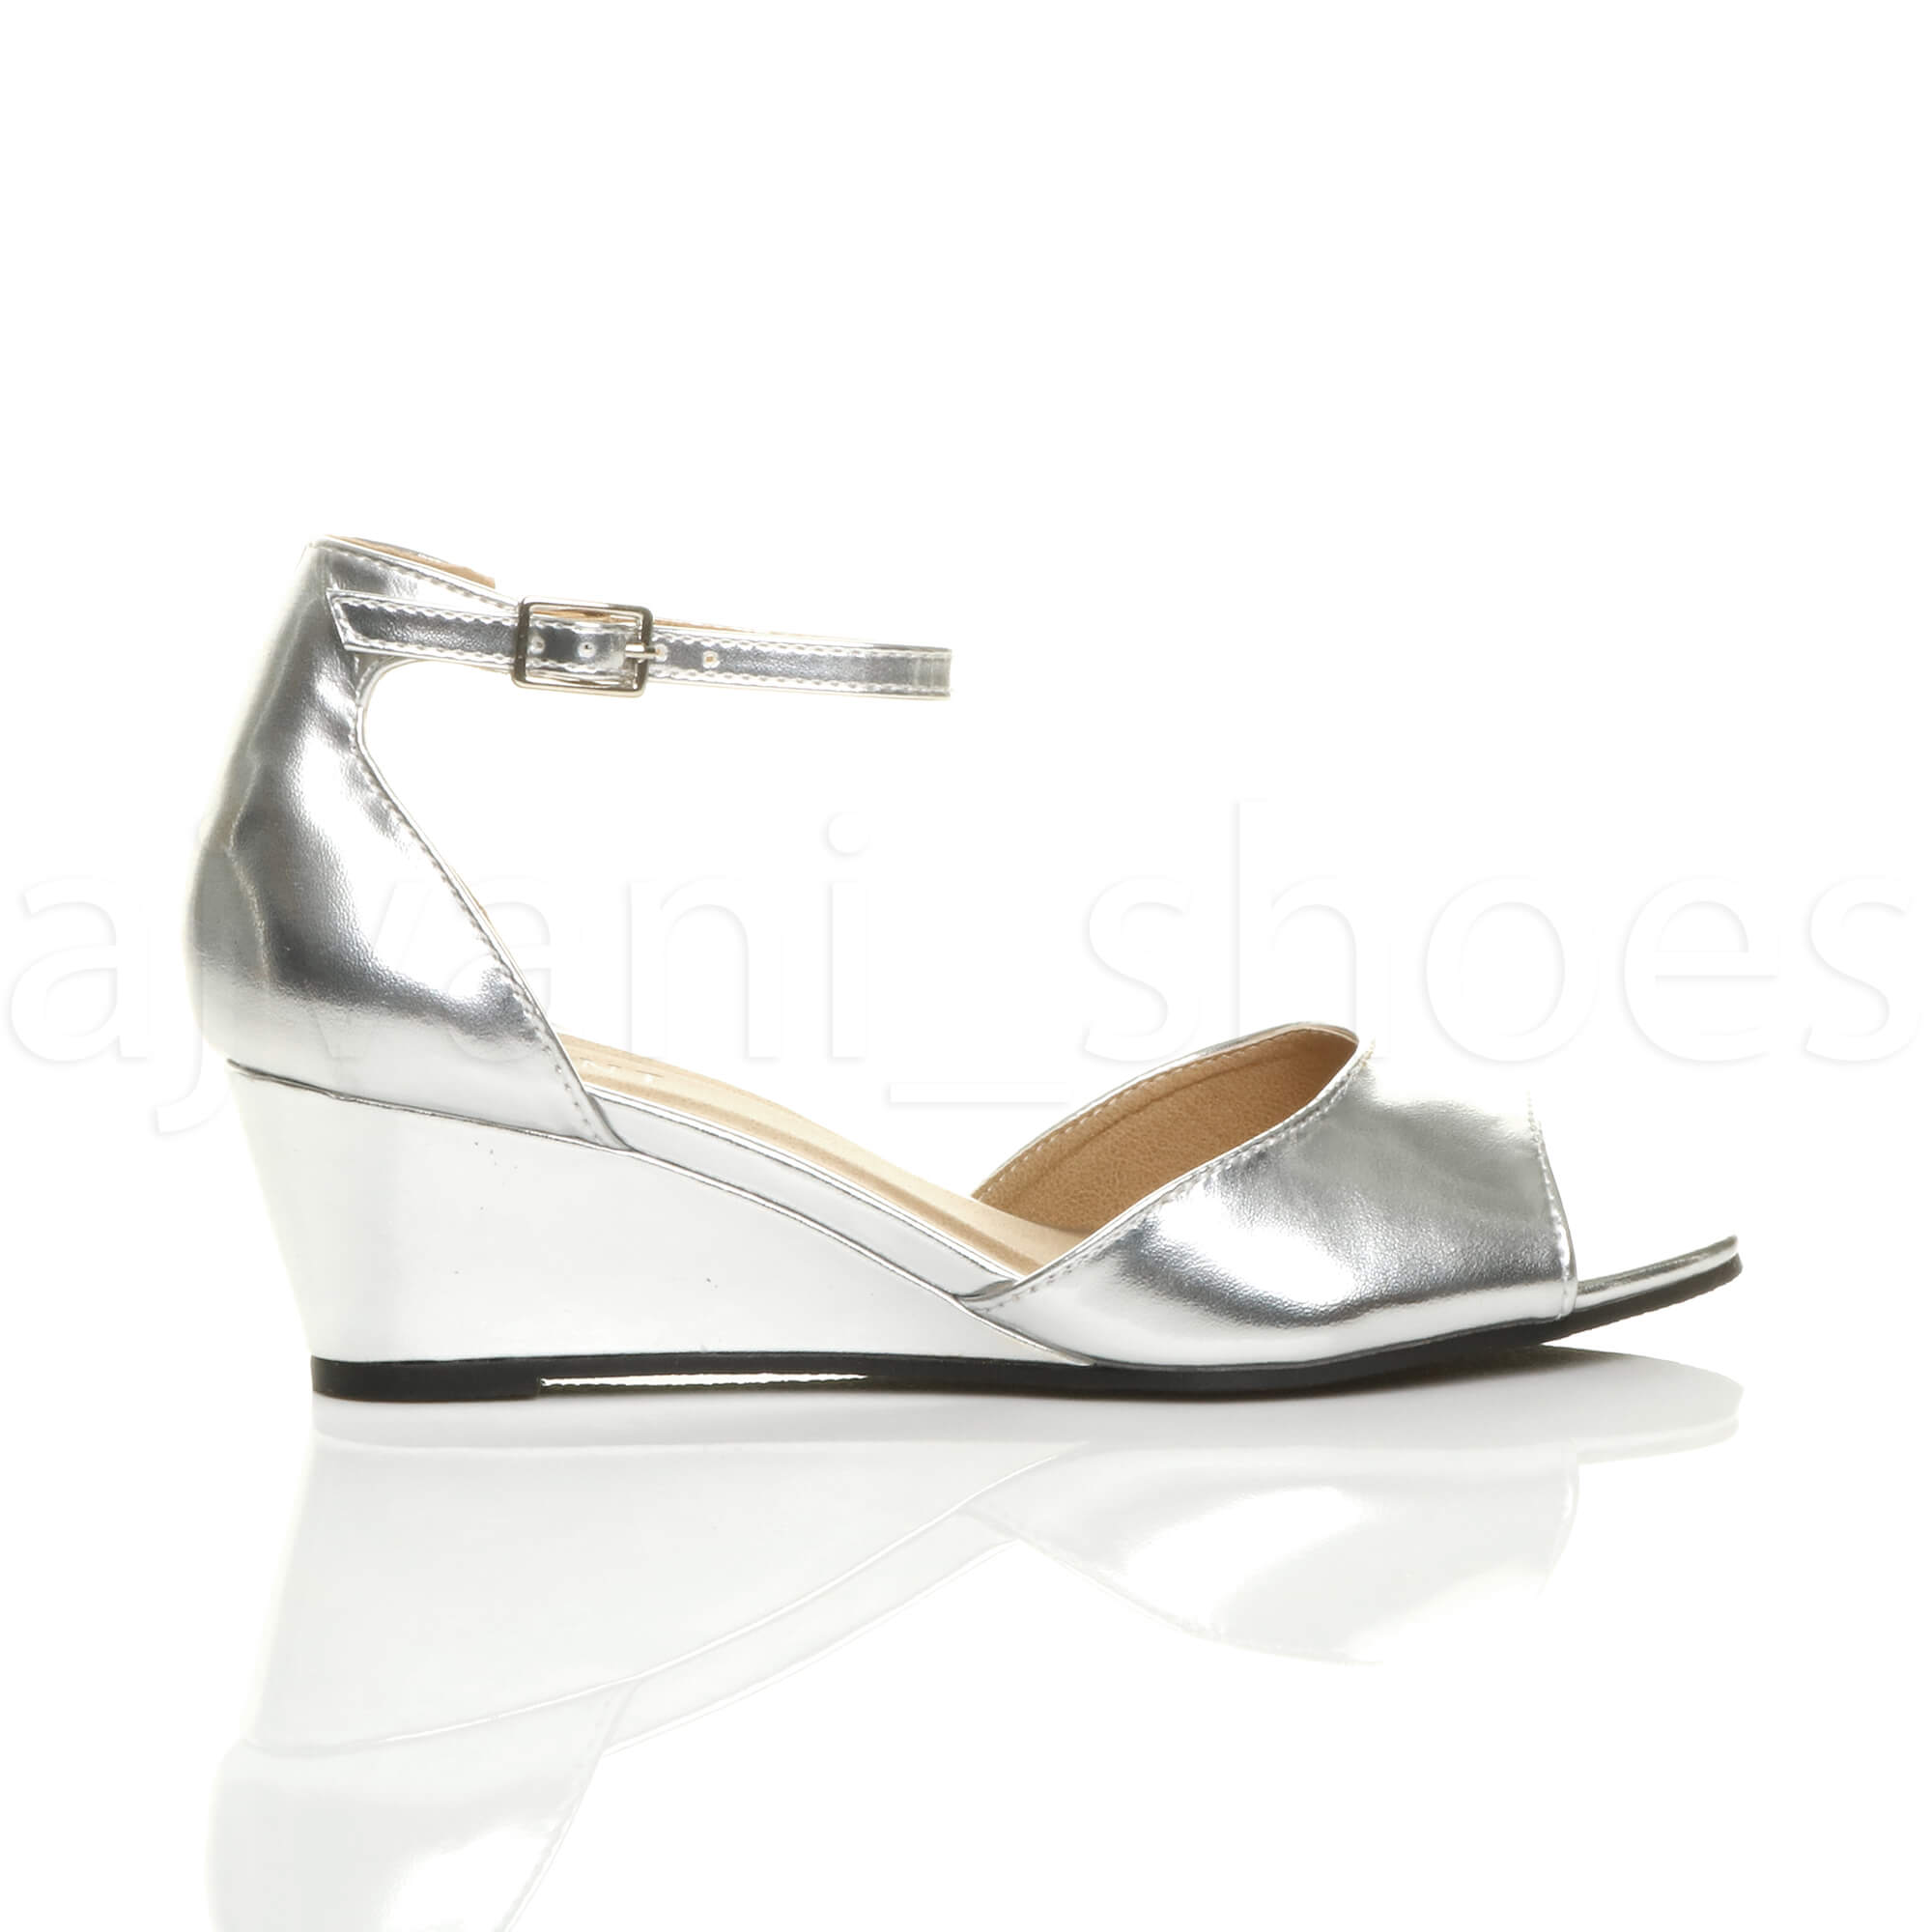 WOMENS-LADIES-LOW-MID-WEDGE-HEEL-ANKLE-STRAP-SMART-CASUAL-EVENING-SANDALS-SIZE thumbnail 147